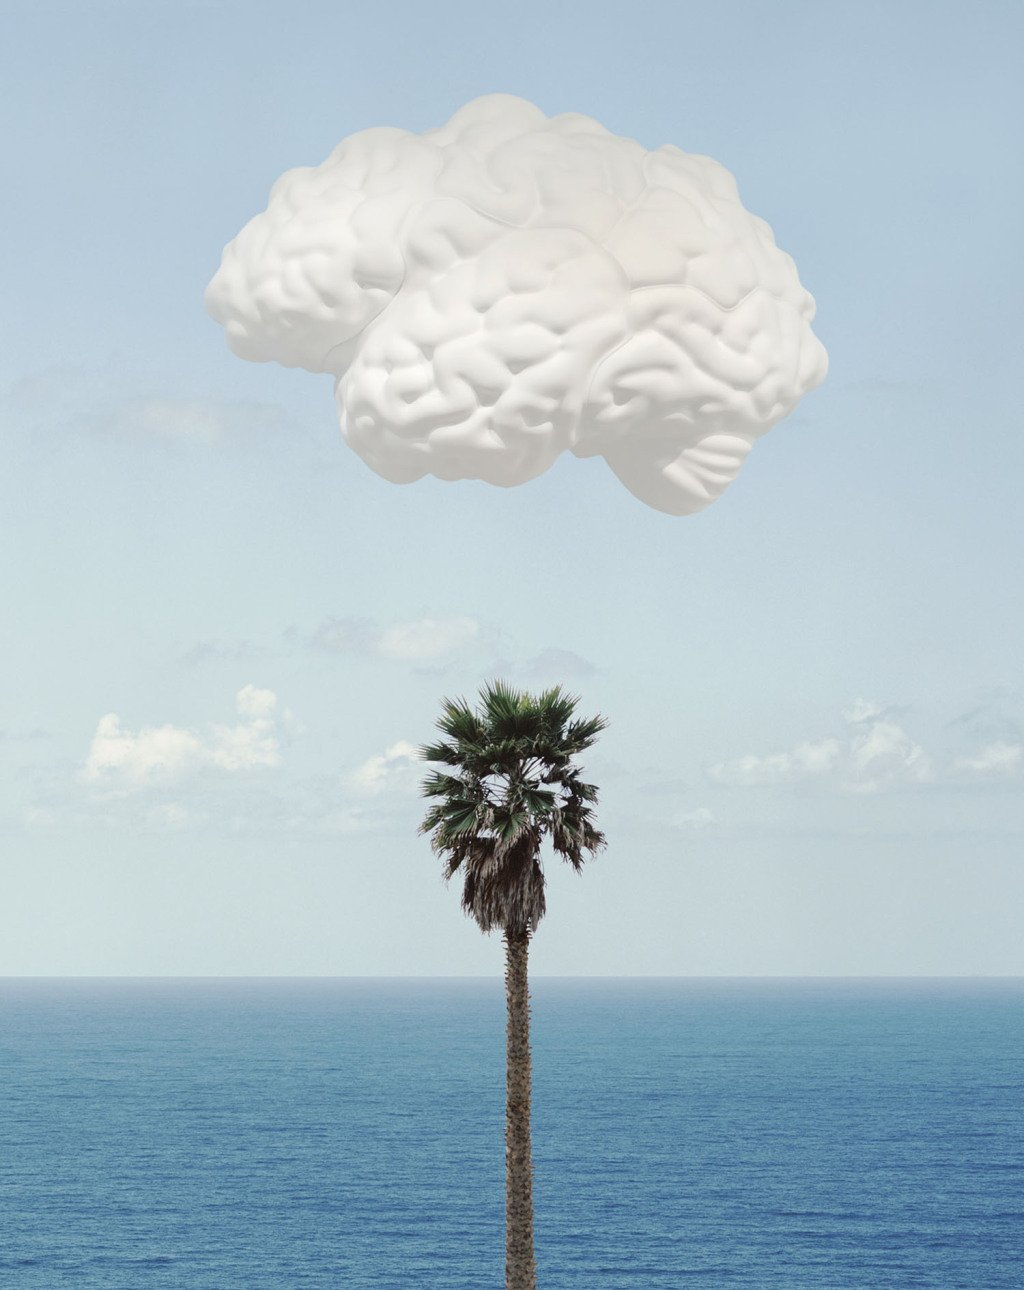 John Baldessari, Brain/Cloud (With Seascape and Palm Tree)